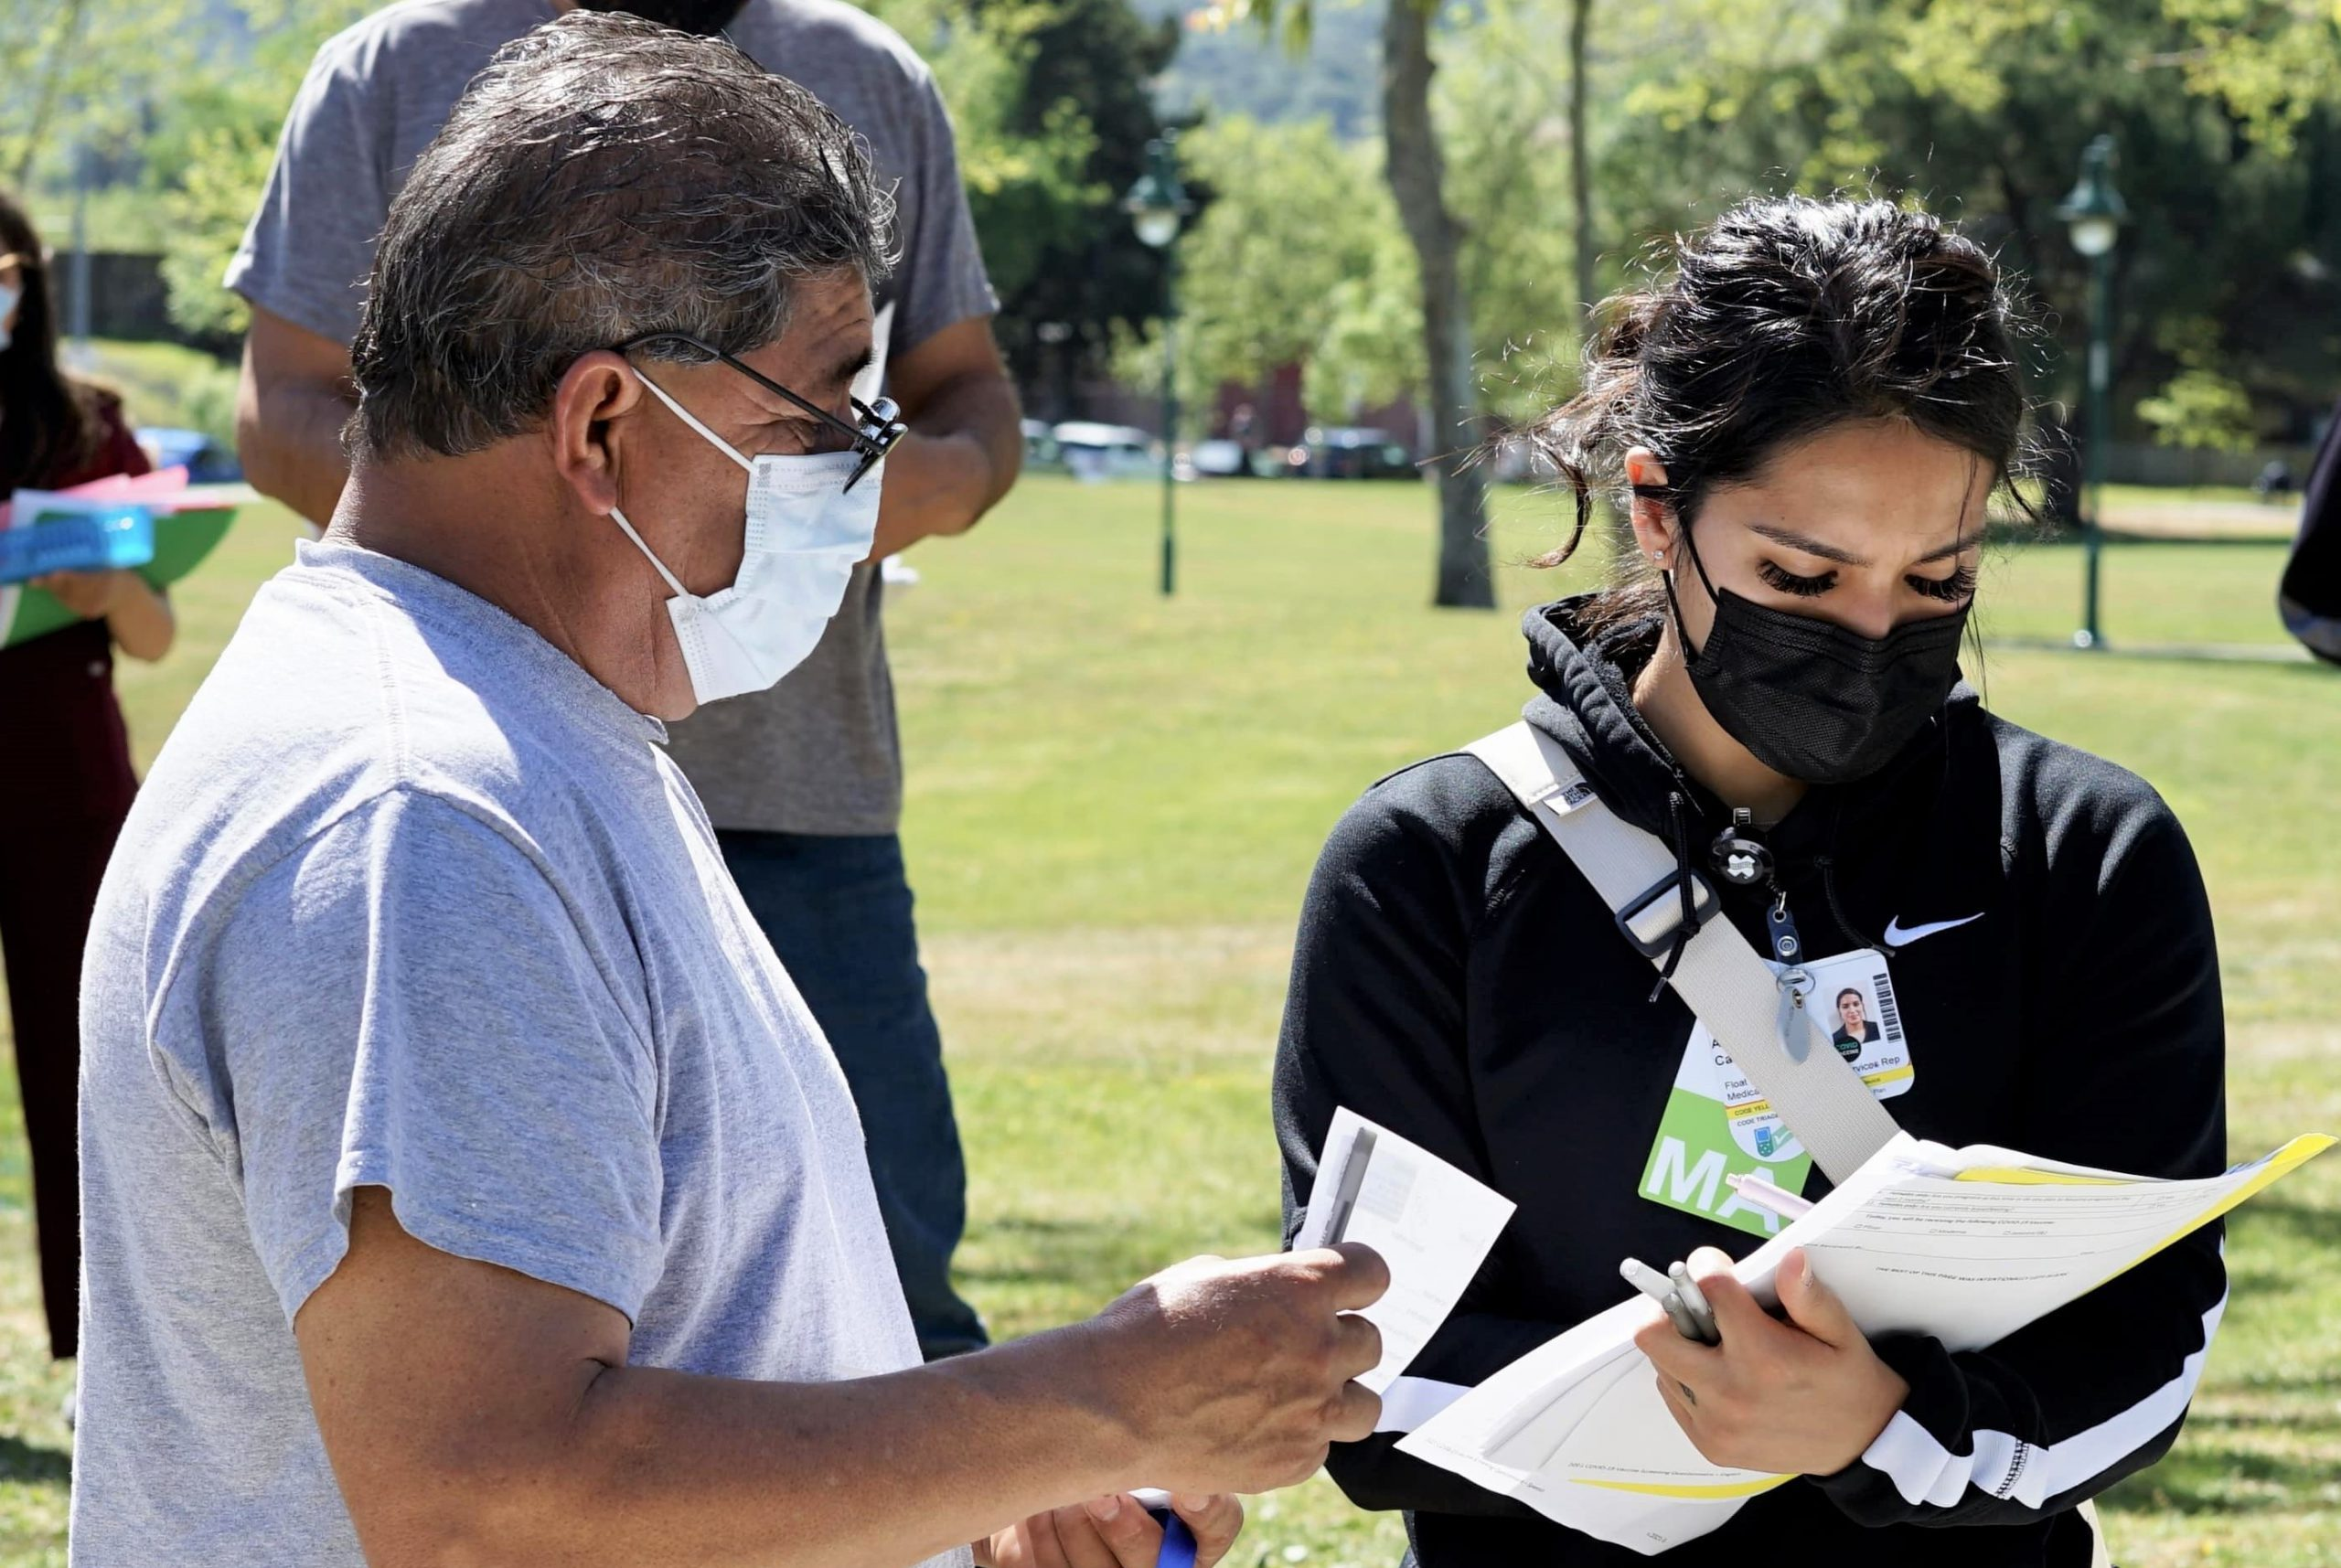 A doctor and Latino community member discuss vaccination